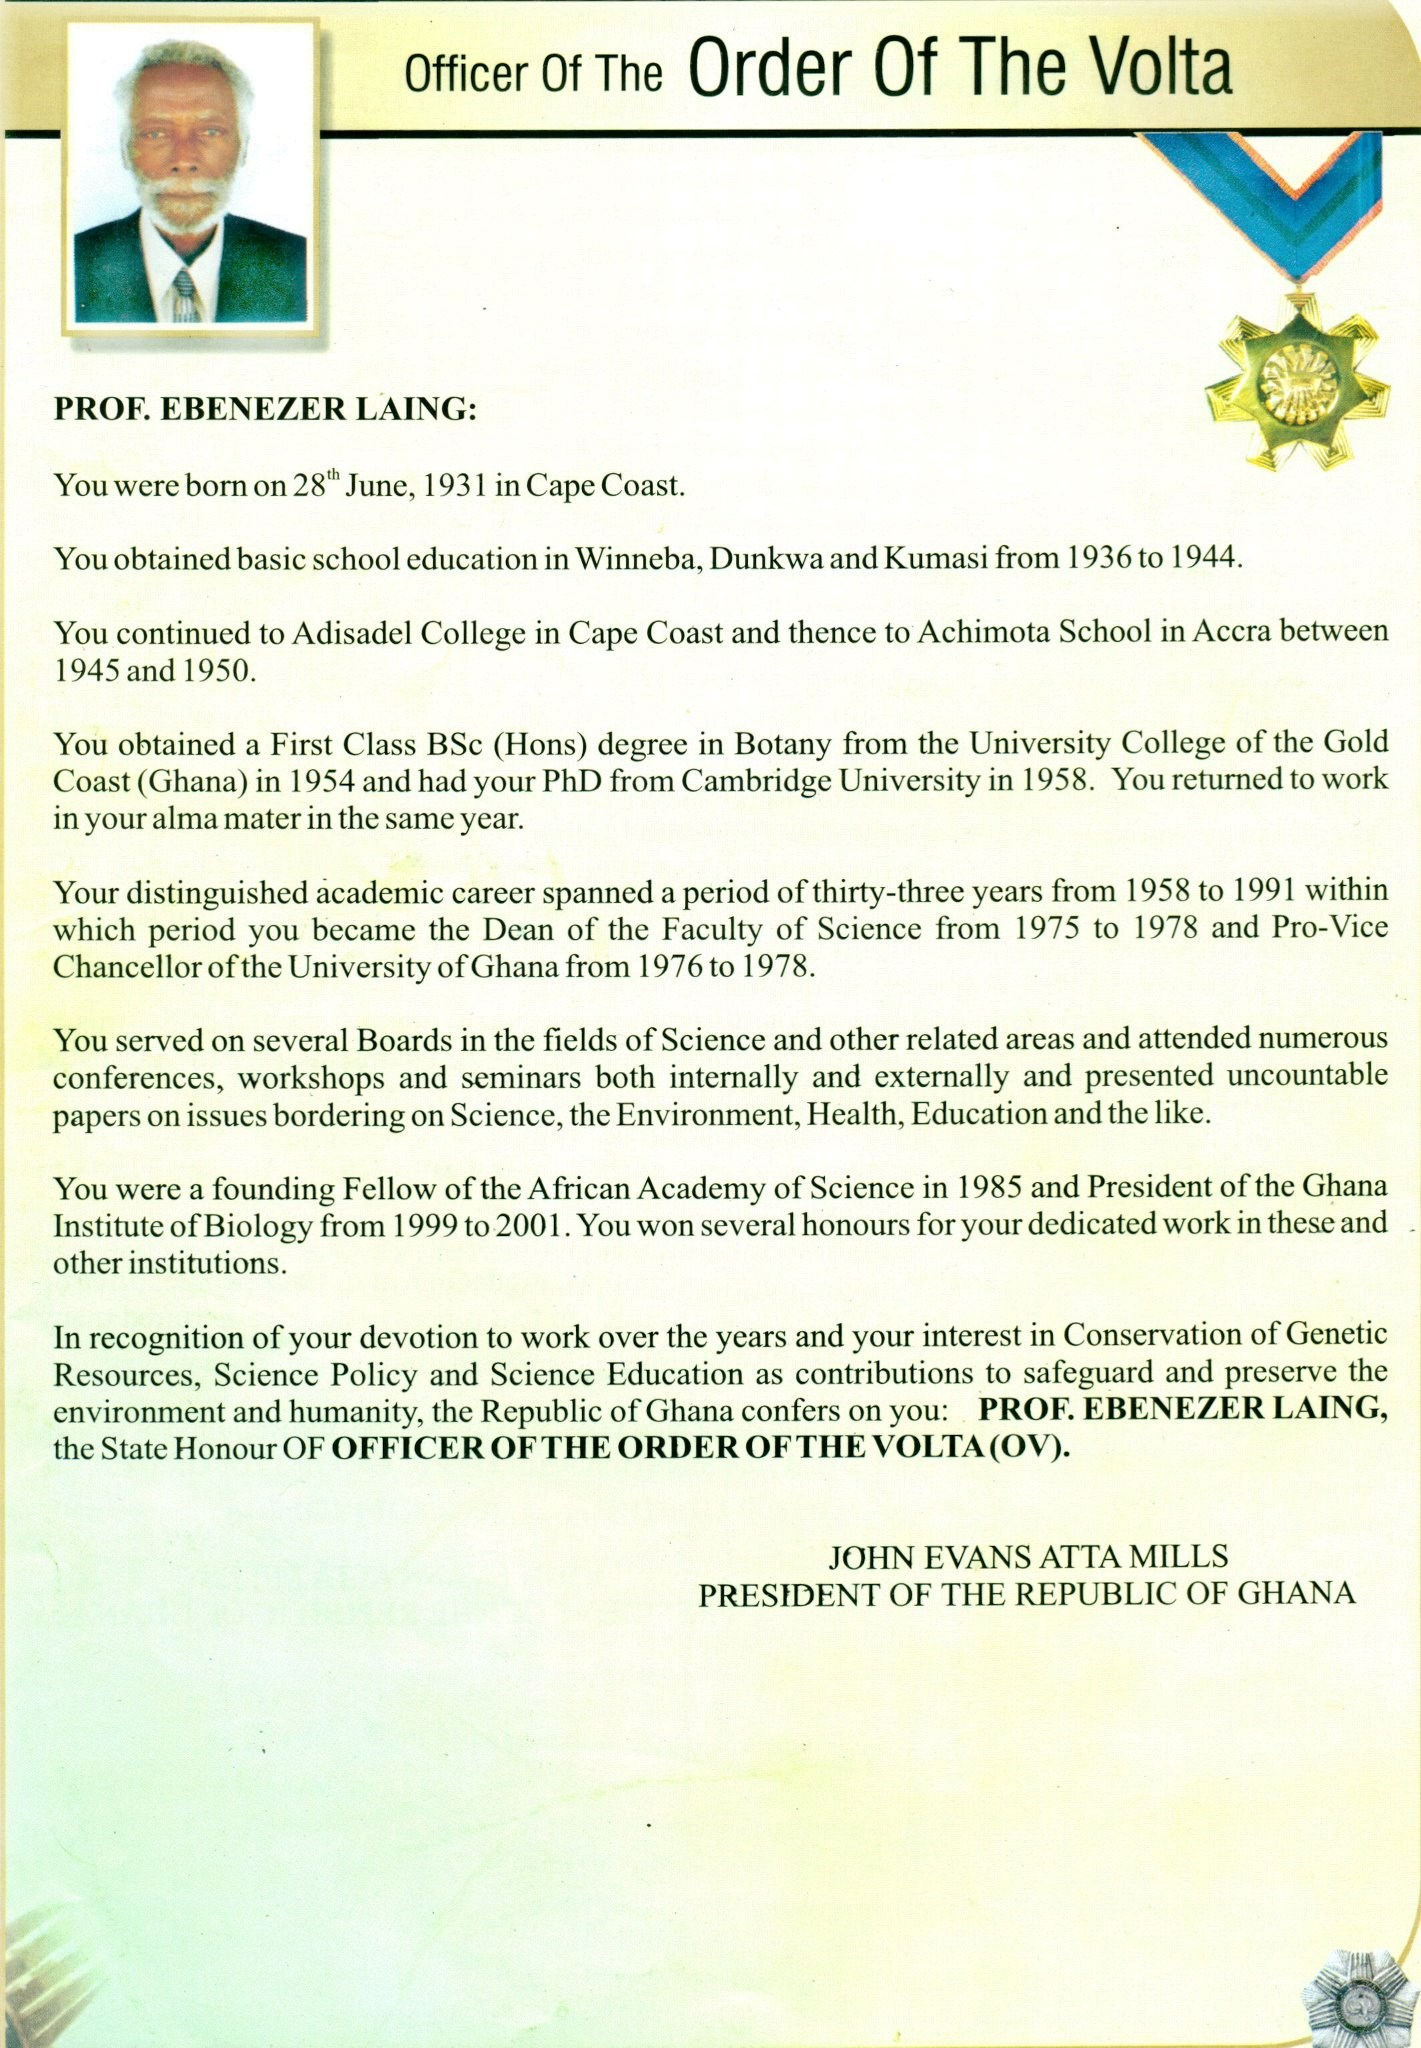 National Award --- Officer Of The Order Of The Volta